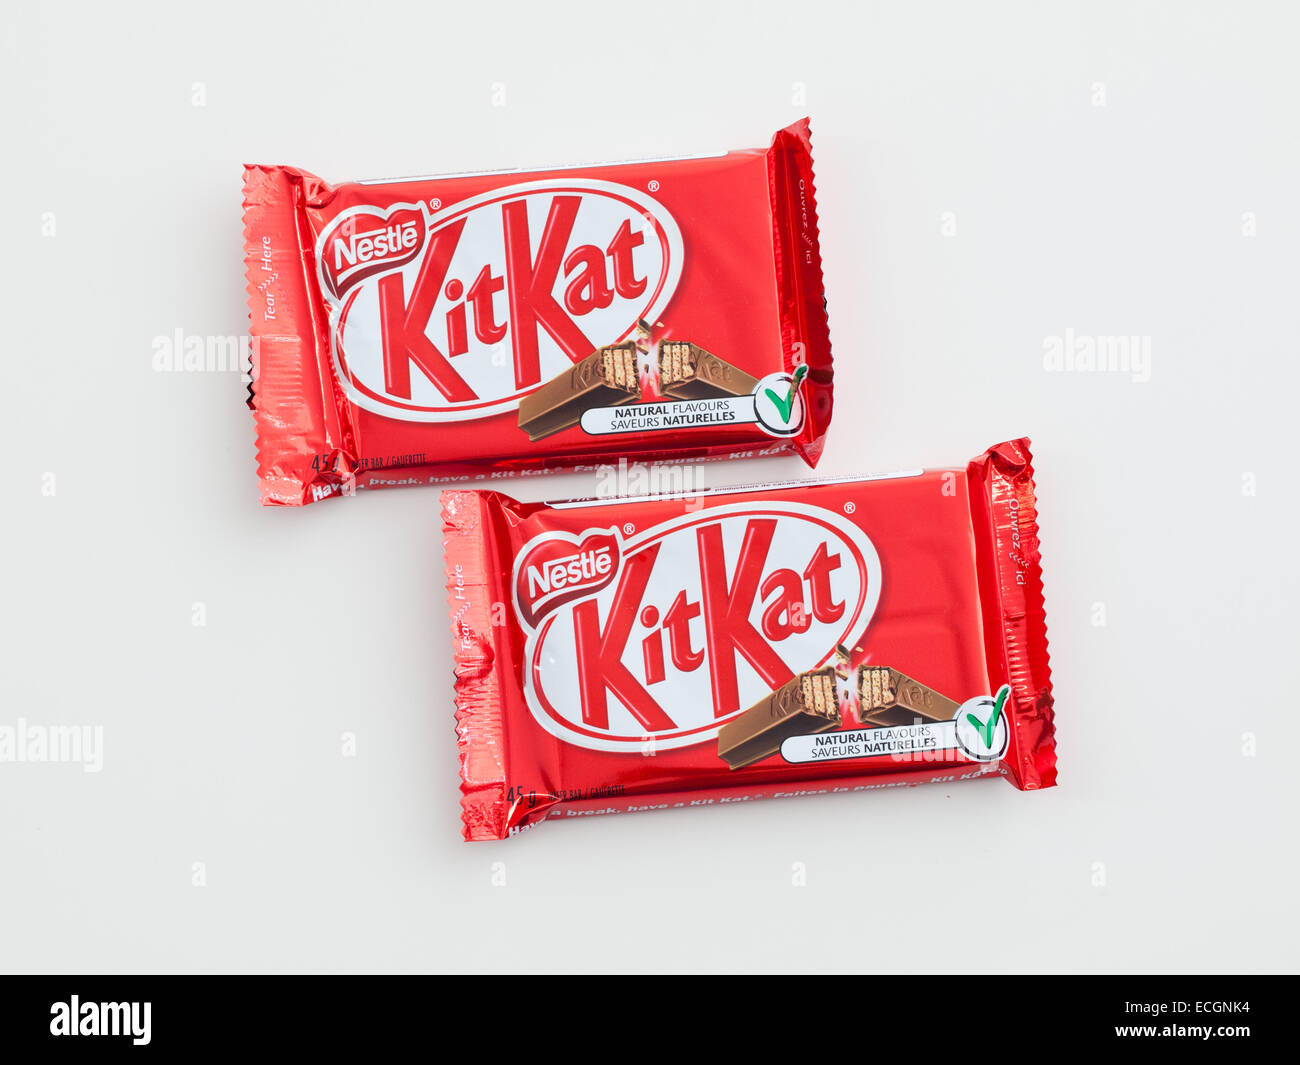 Kit Kat, a popular chocolate-covered wafer biscuit bar confection produced by  Nestlé. Canadian packaging shown. - Stock Image